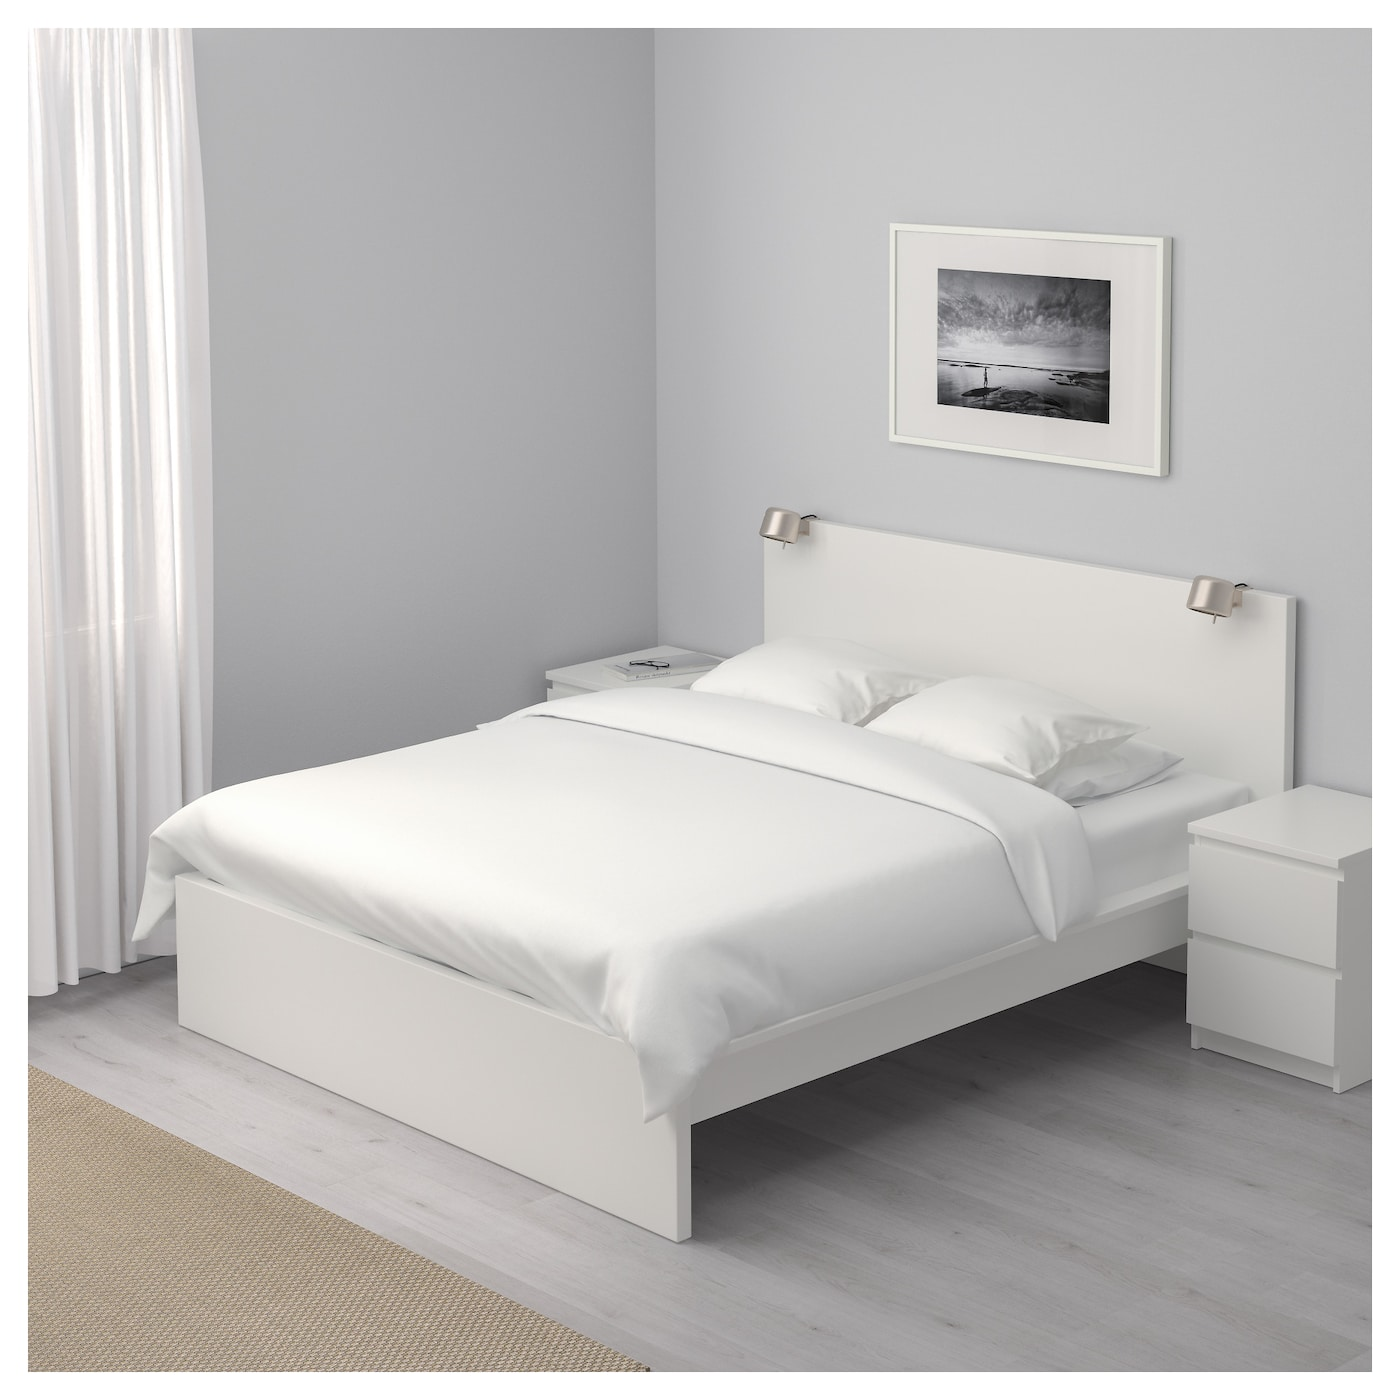 Malm bed frame high white l nset standard king ikea for Ikea mattress frame